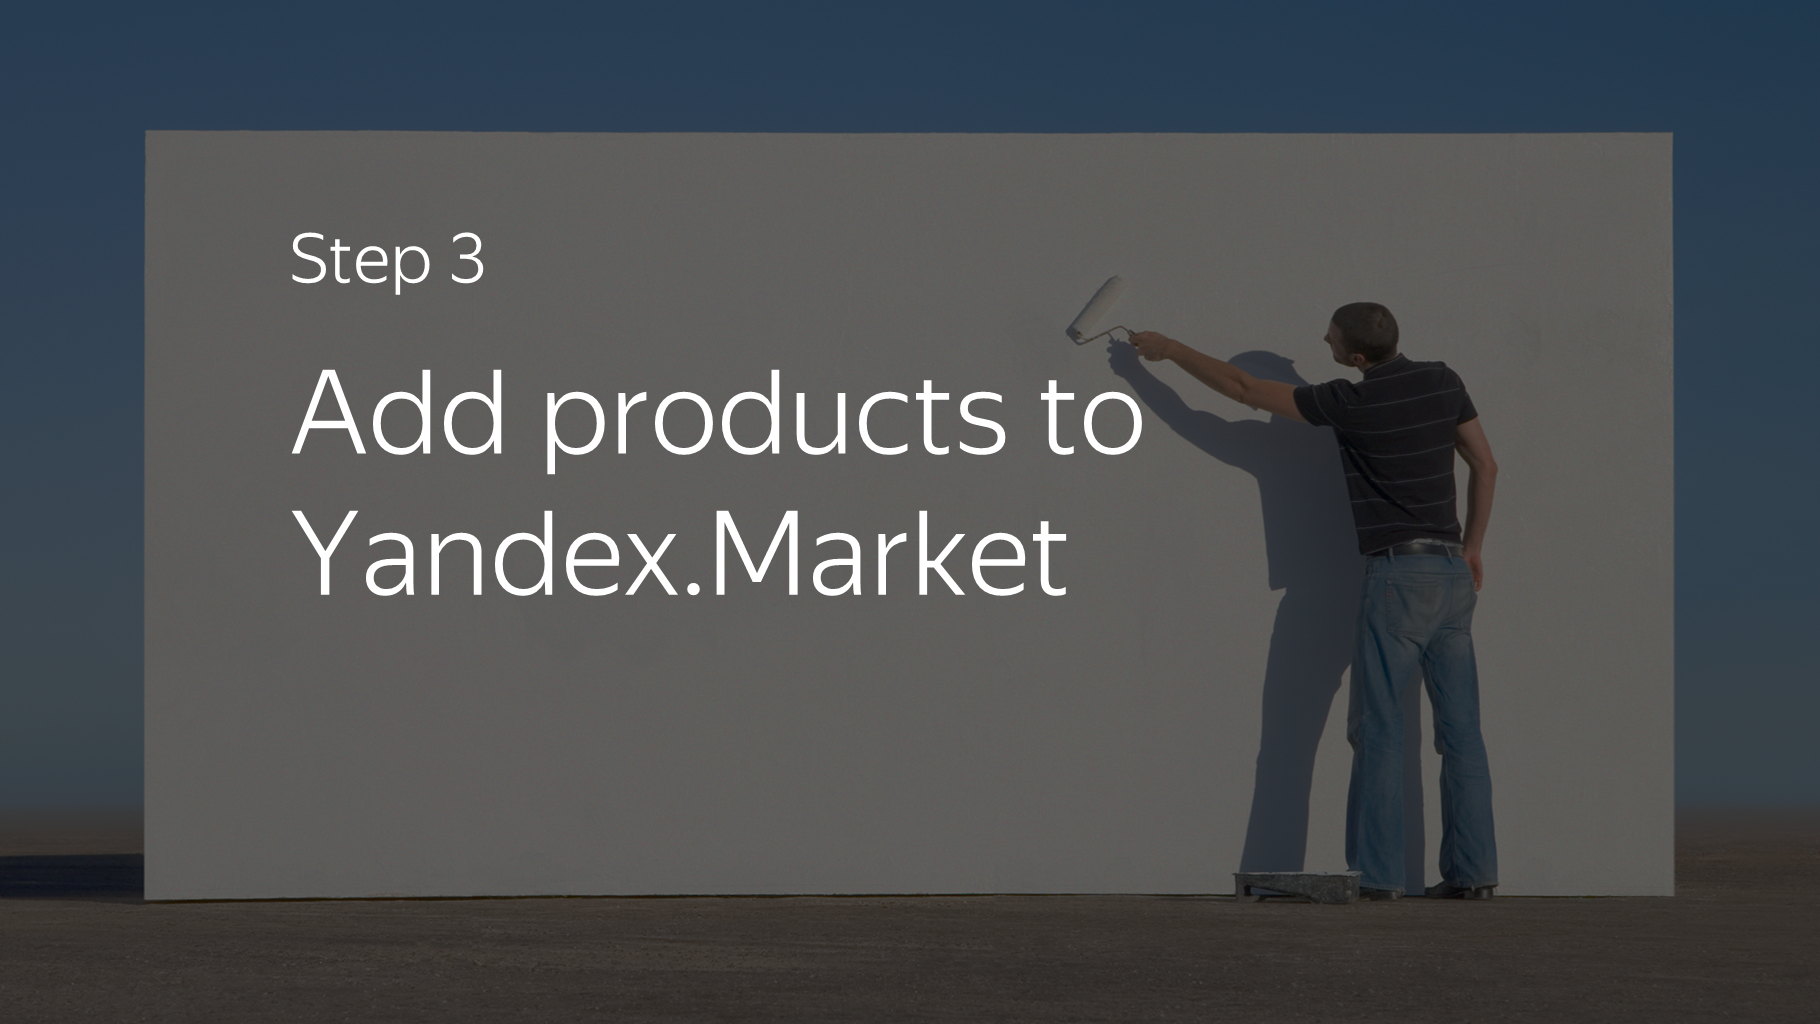 Step 3 Add products to Yandex.Market